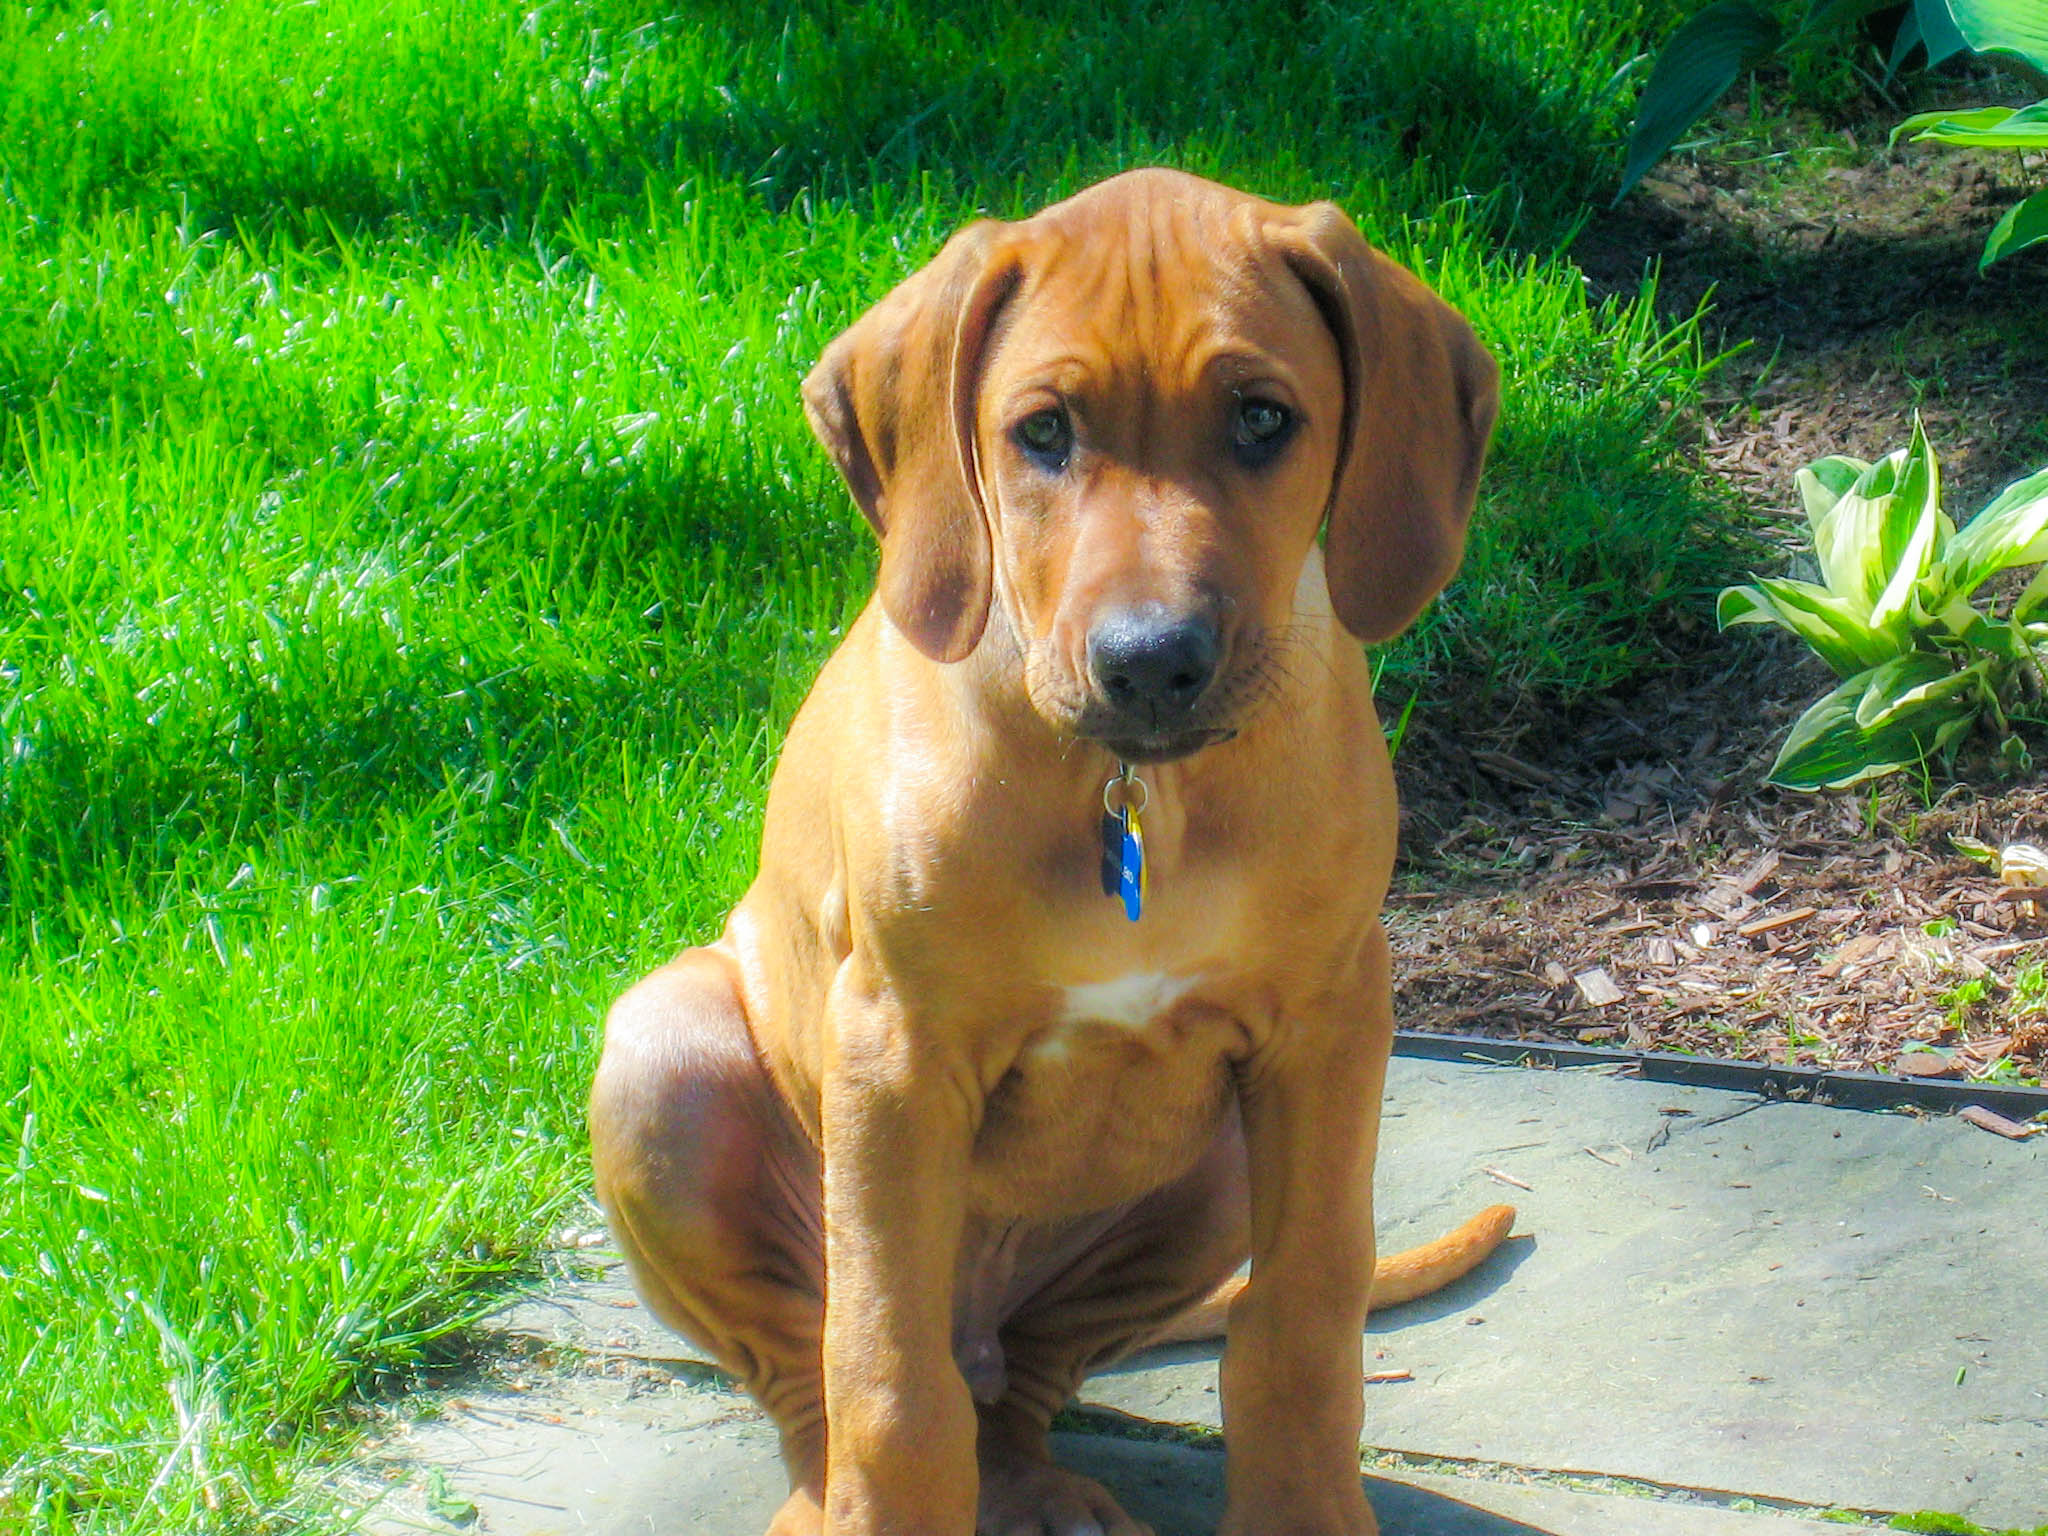 Rhodesian Ridgeback, Rhodesian Ridgeback puppy, Rhodesian Ridgeback photo, dog adventure, dog blog